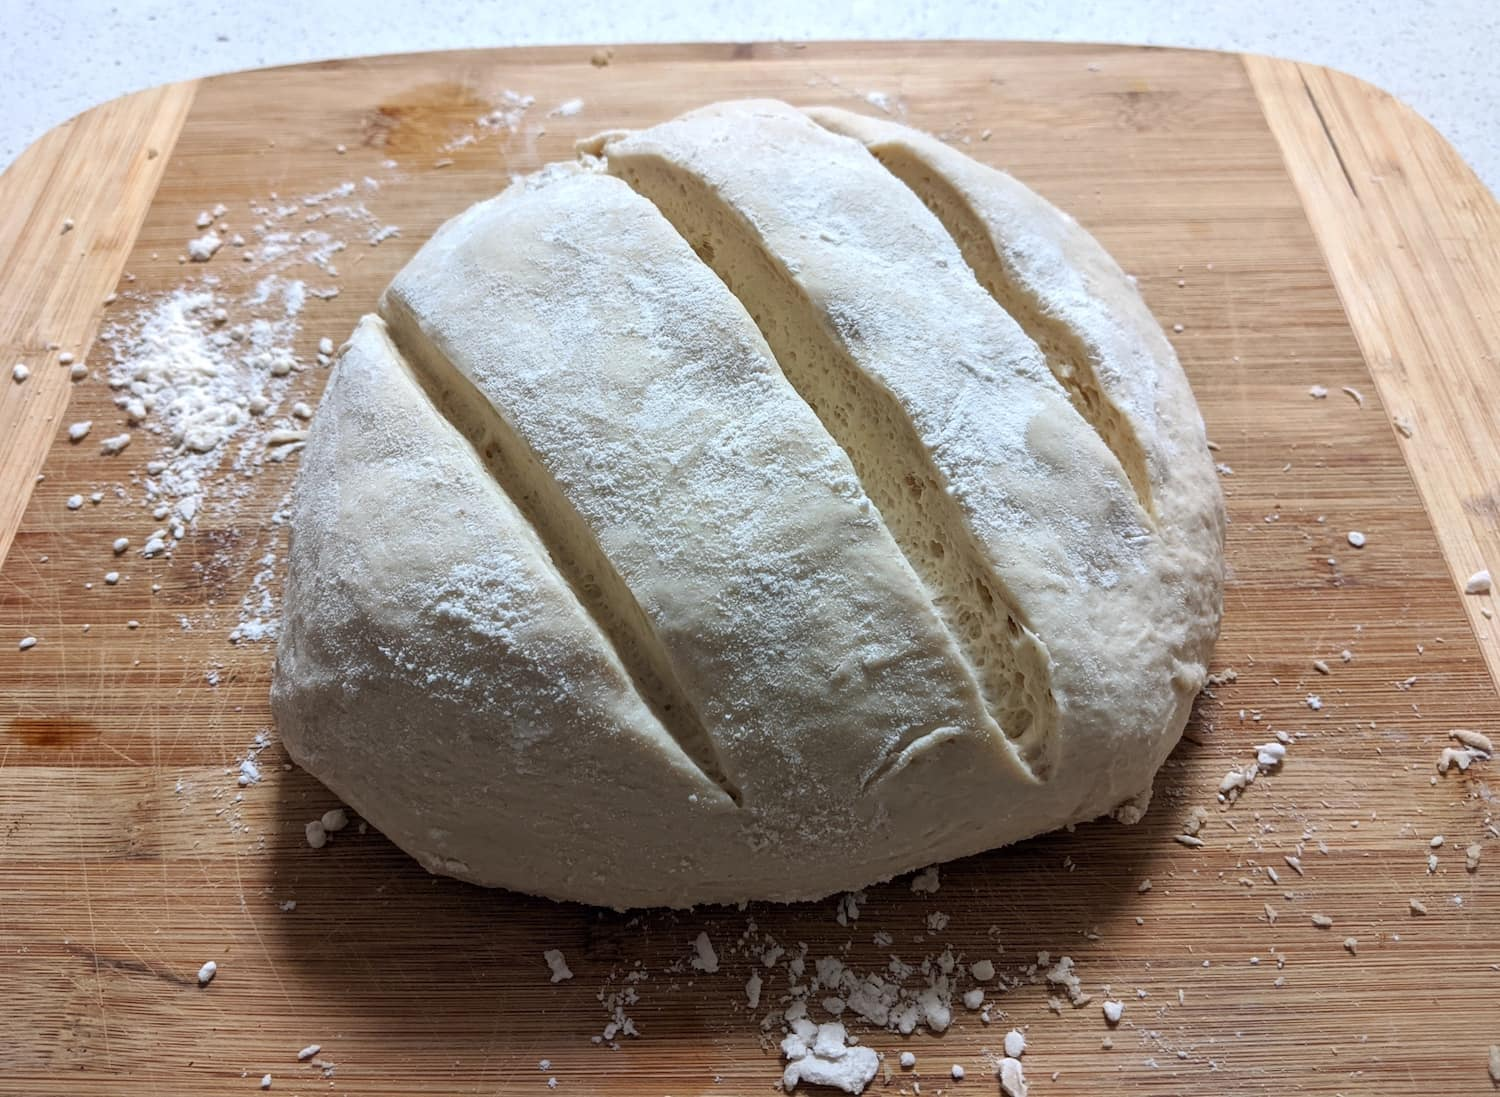 An un-baked sourdough loaf